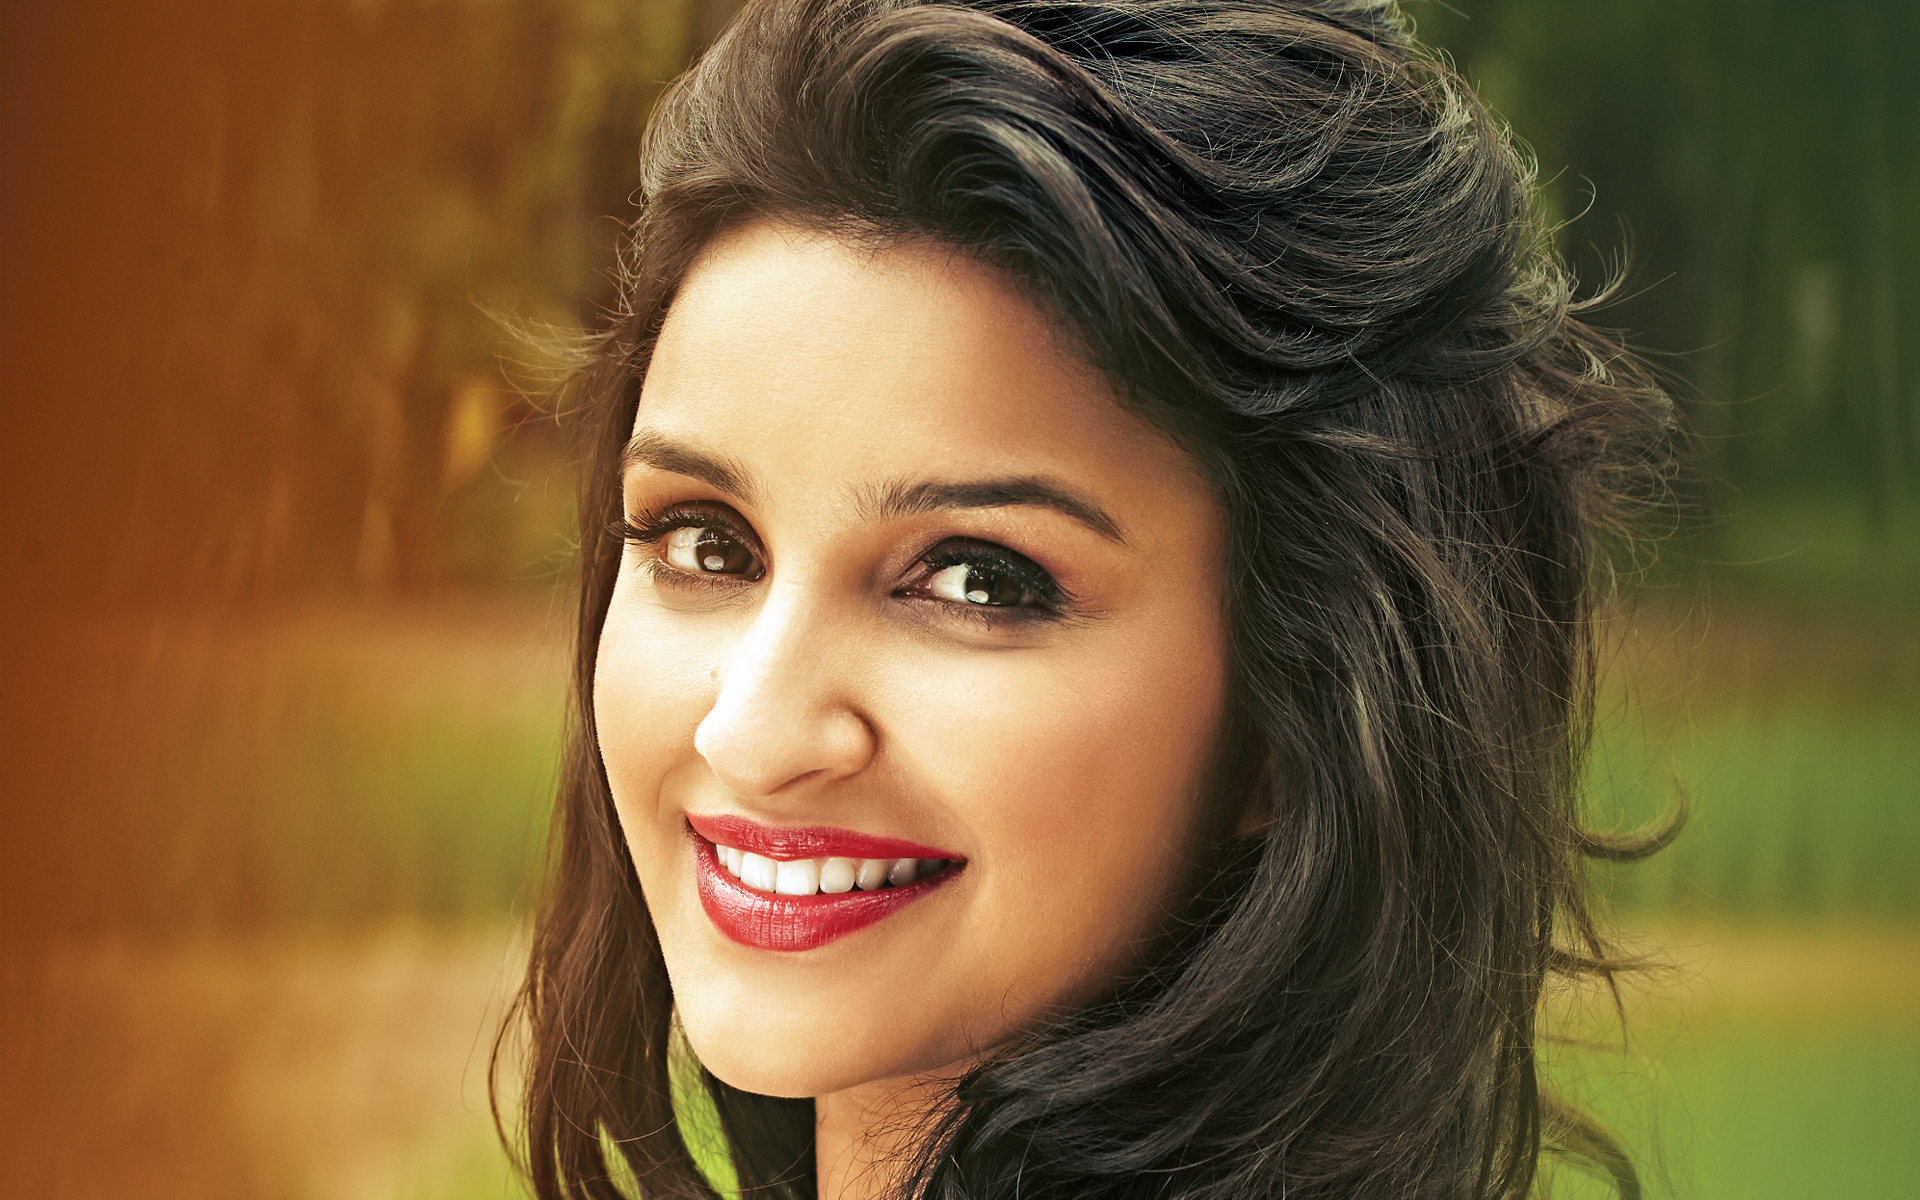 Beautiful Parineeti Chopra Smiling Look Mobile Desktop Free Background Hd Images